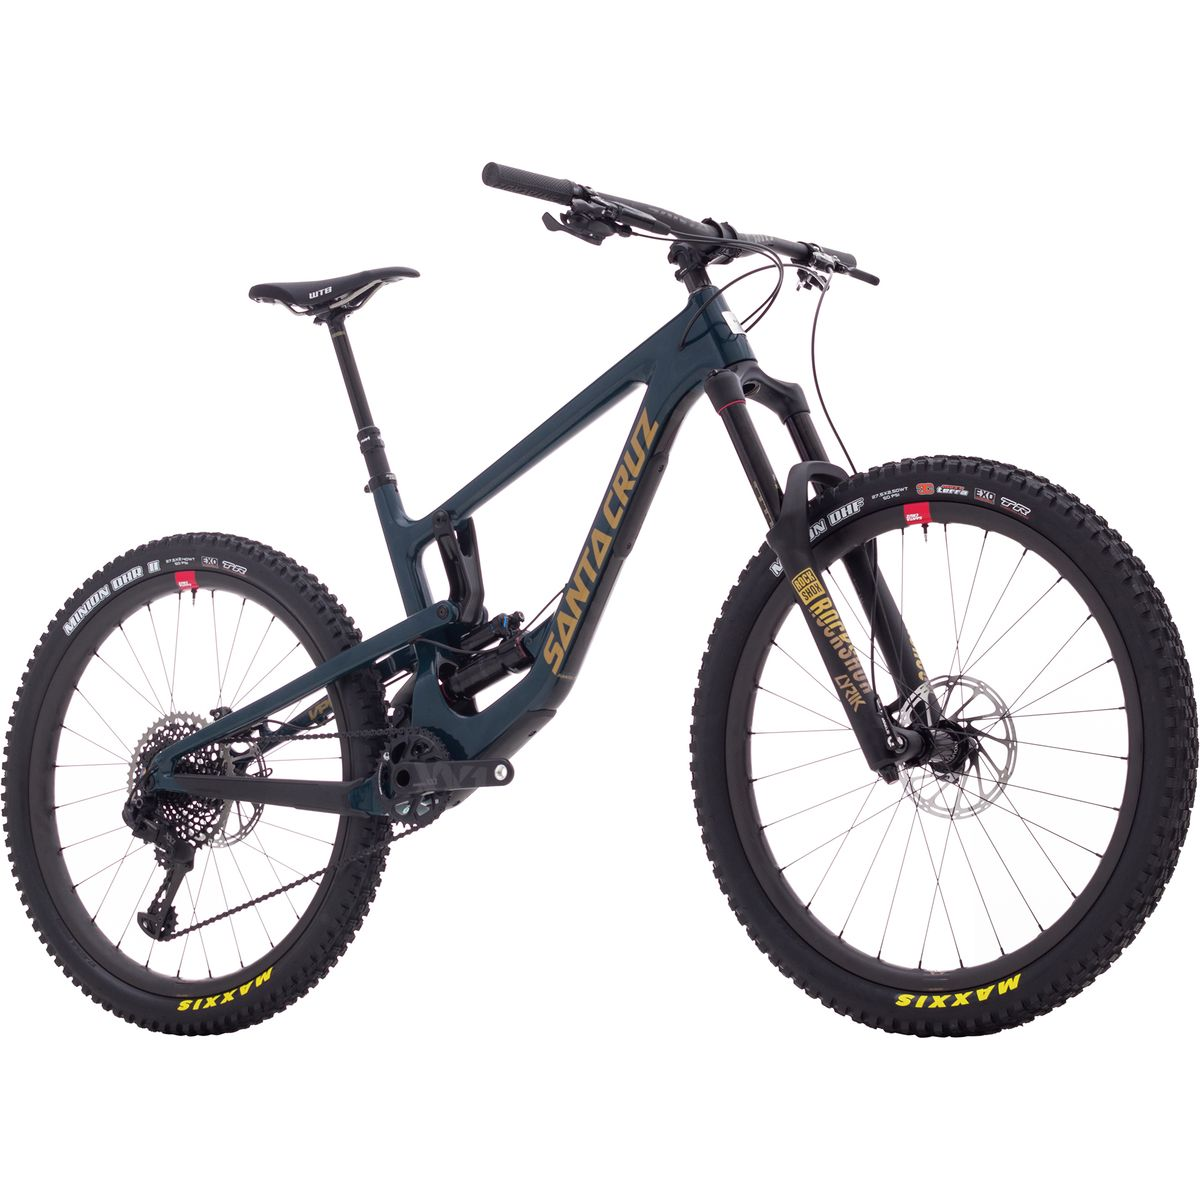 Santa Cruz Bicycles Nomad Carbon CC XX1 Reserve RCT Air Complete 2018 Blue